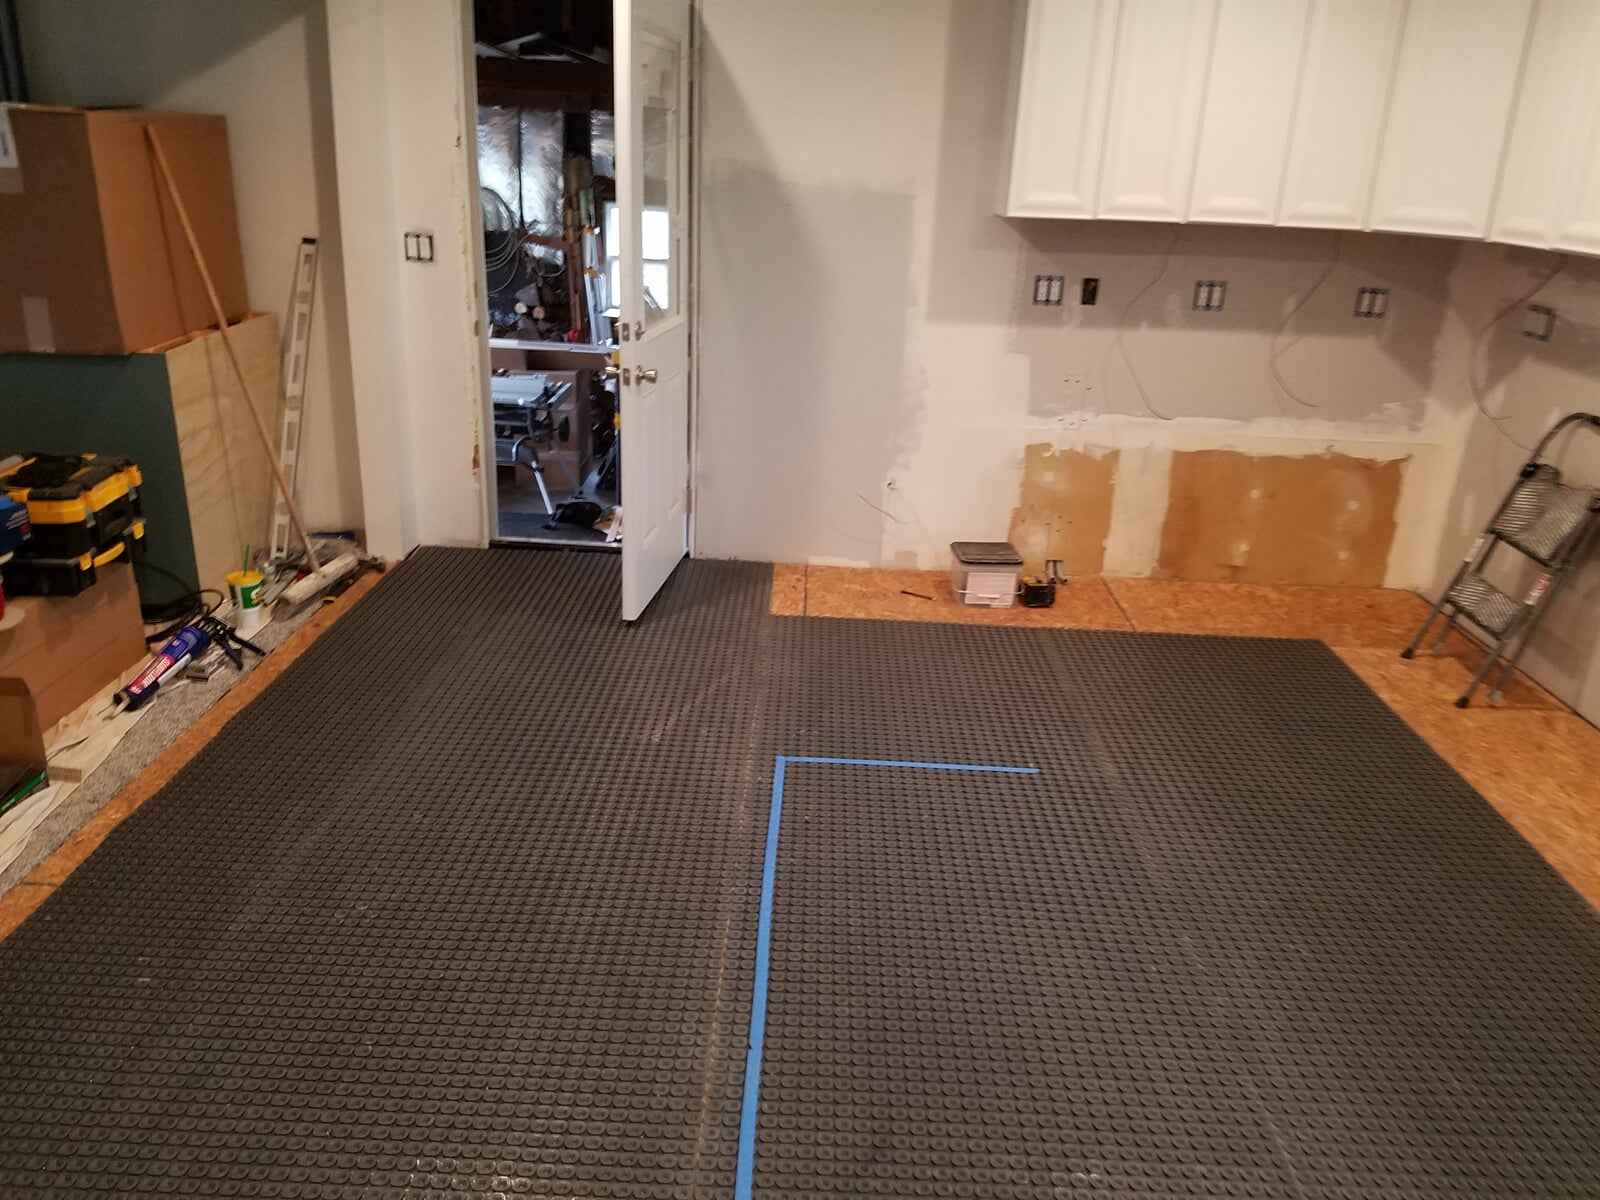 Room in house featuring the Nuheat Mat